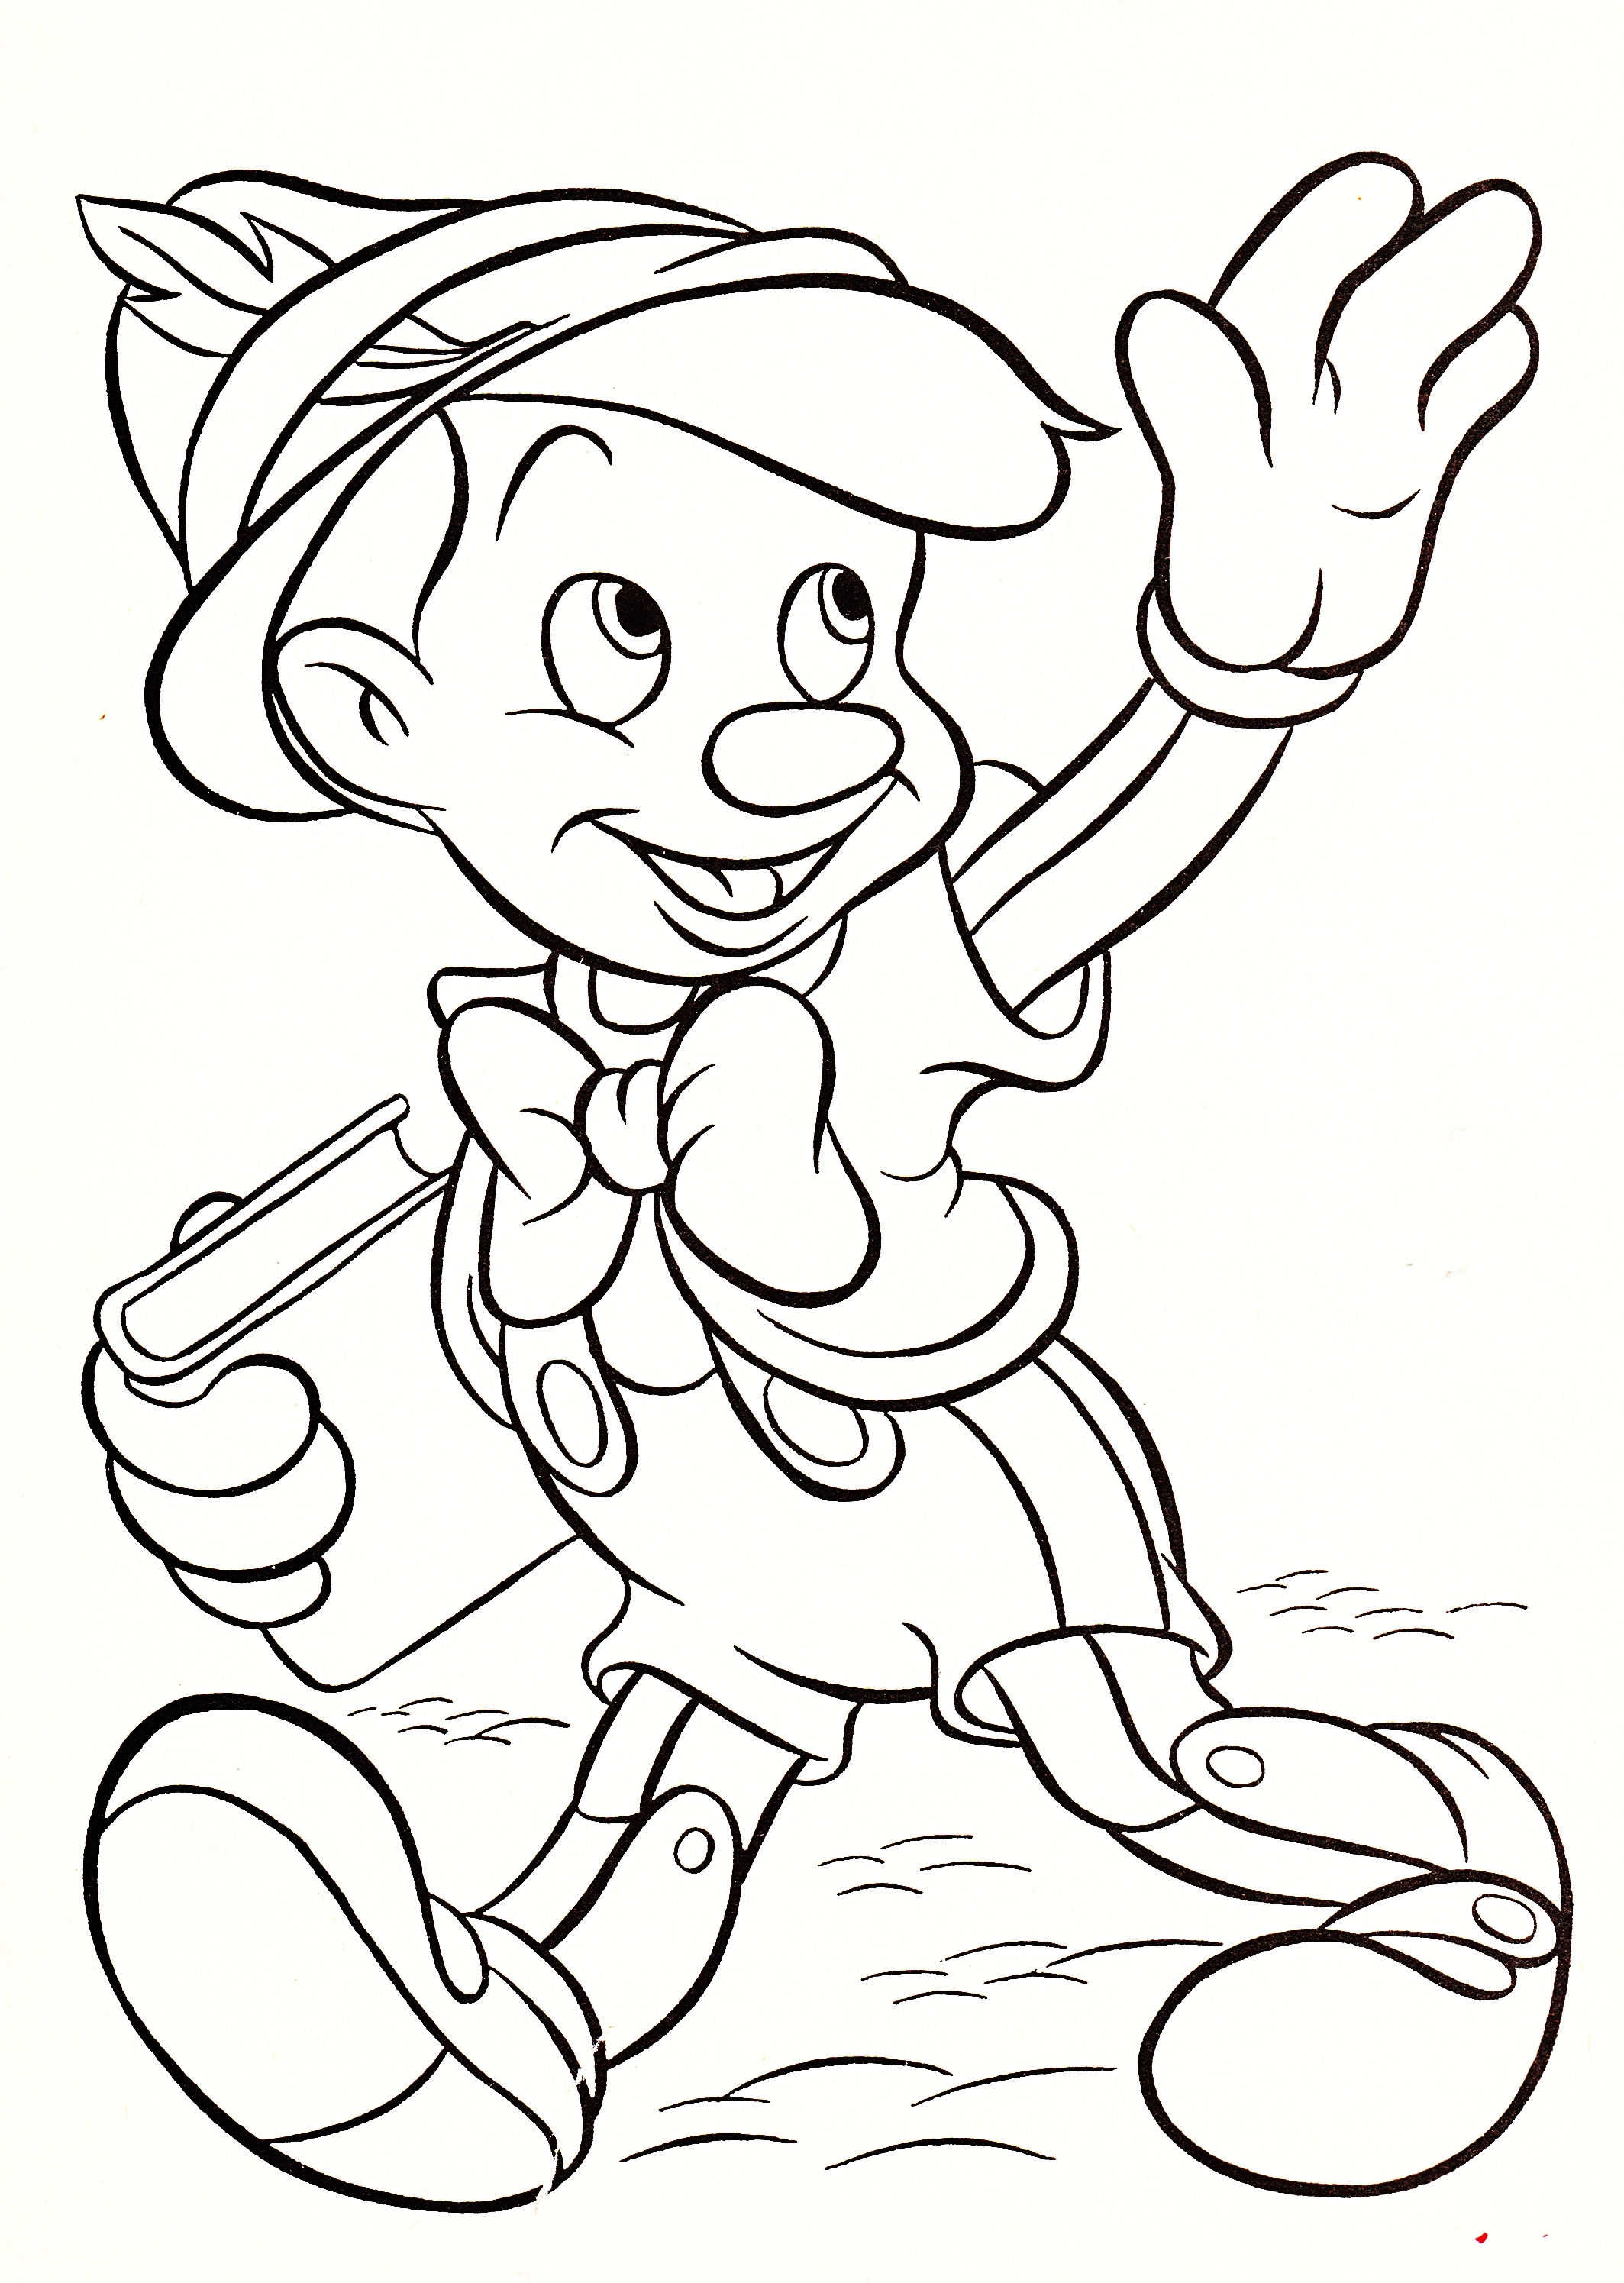 Coloring Pages Walt Disney : Walt disney coloring pages pinocchio